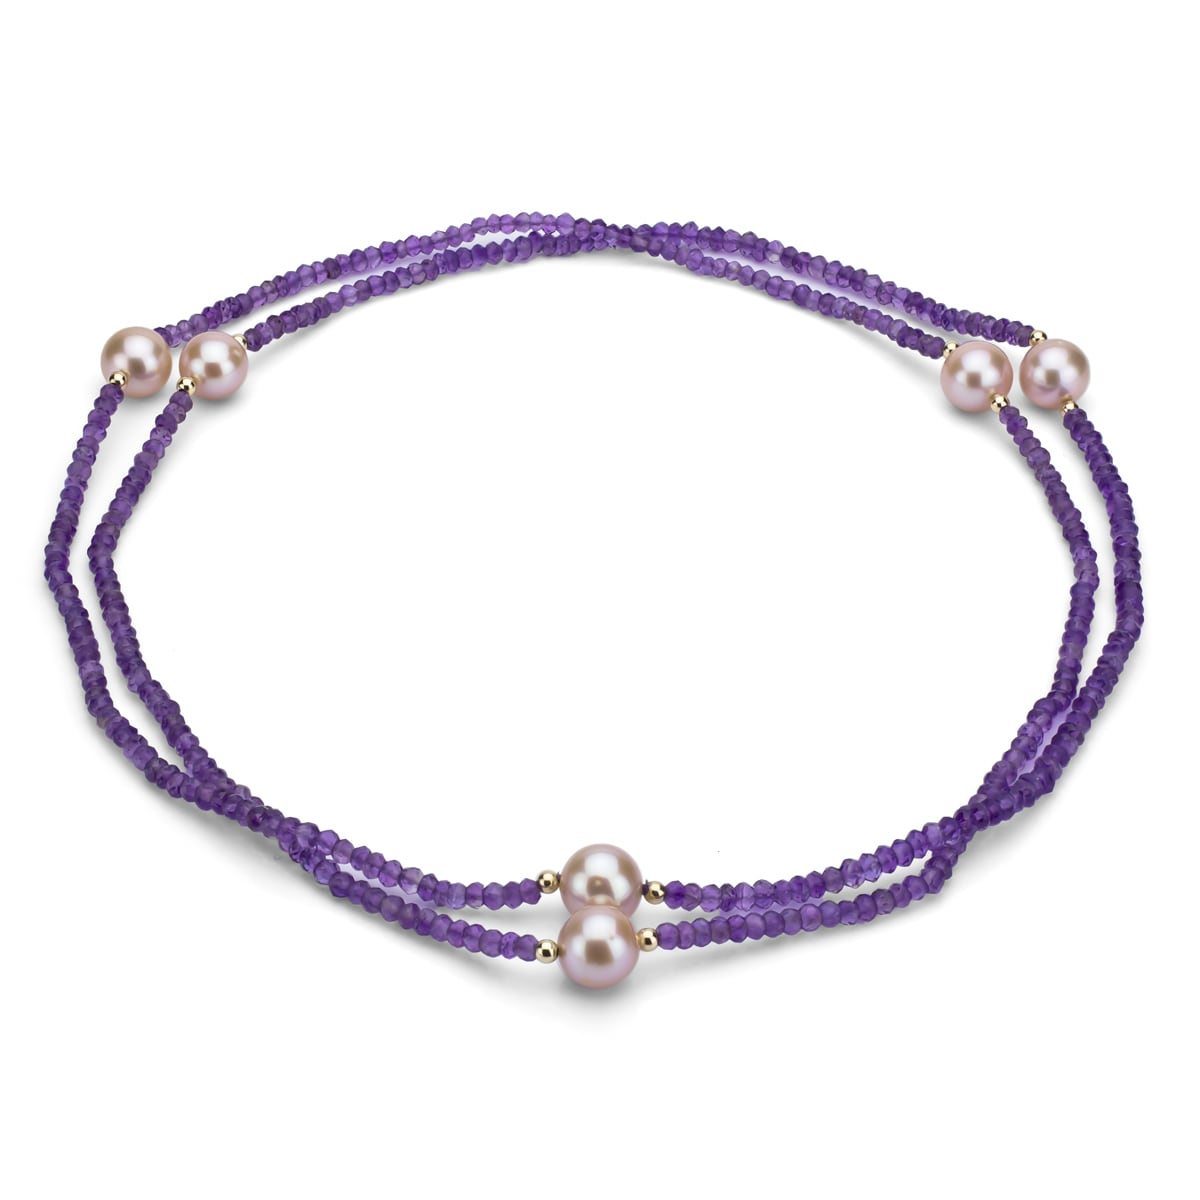 DaVonna 14k Gold Amethyst/ Pink FW 11-12mm Pearl Necklace...